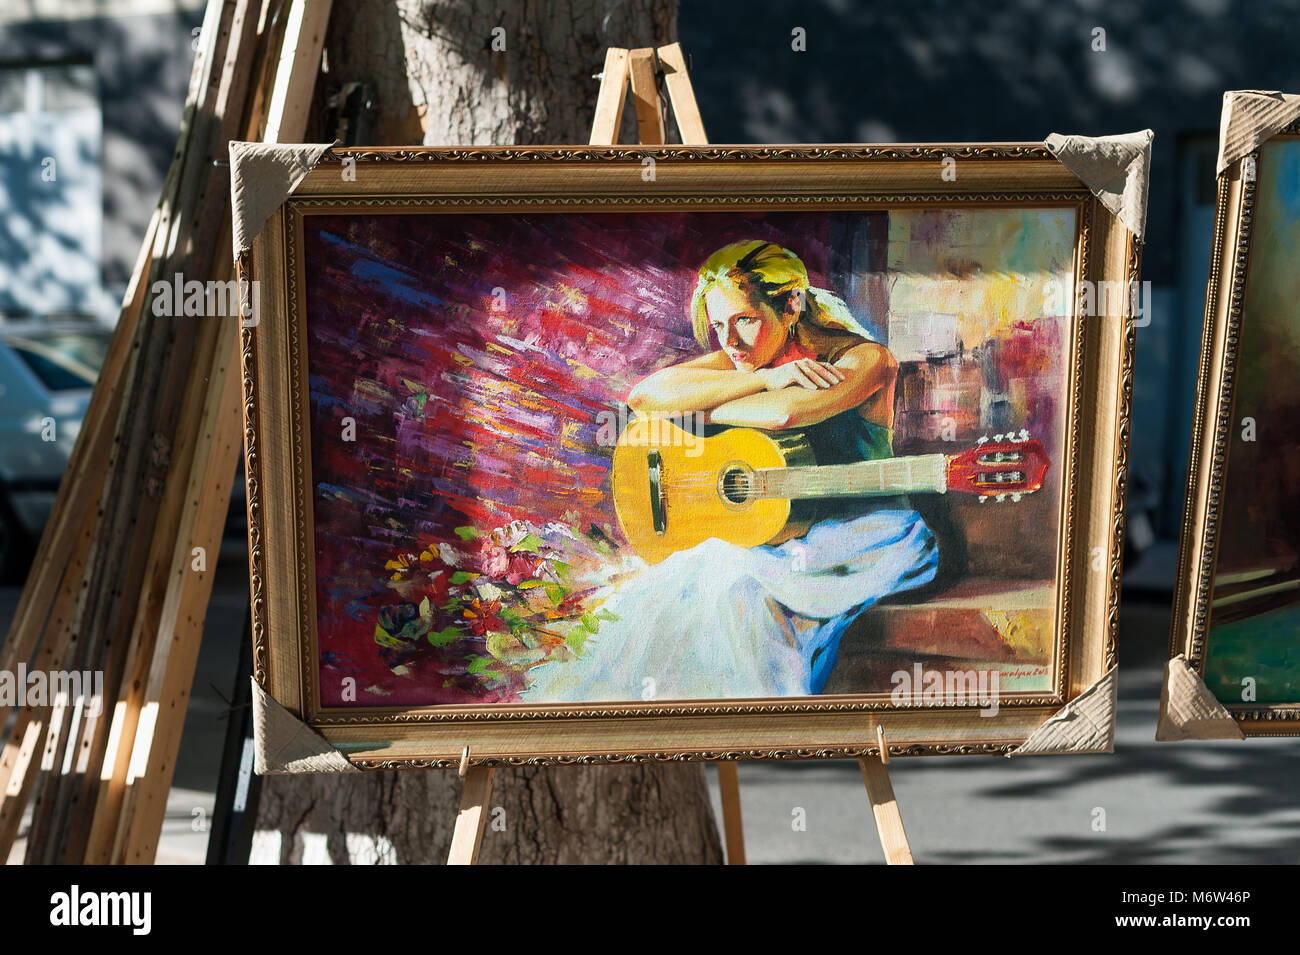 Painting of a guitar player for sale at the Yerevan open-air market,Armenia. - Stock Image